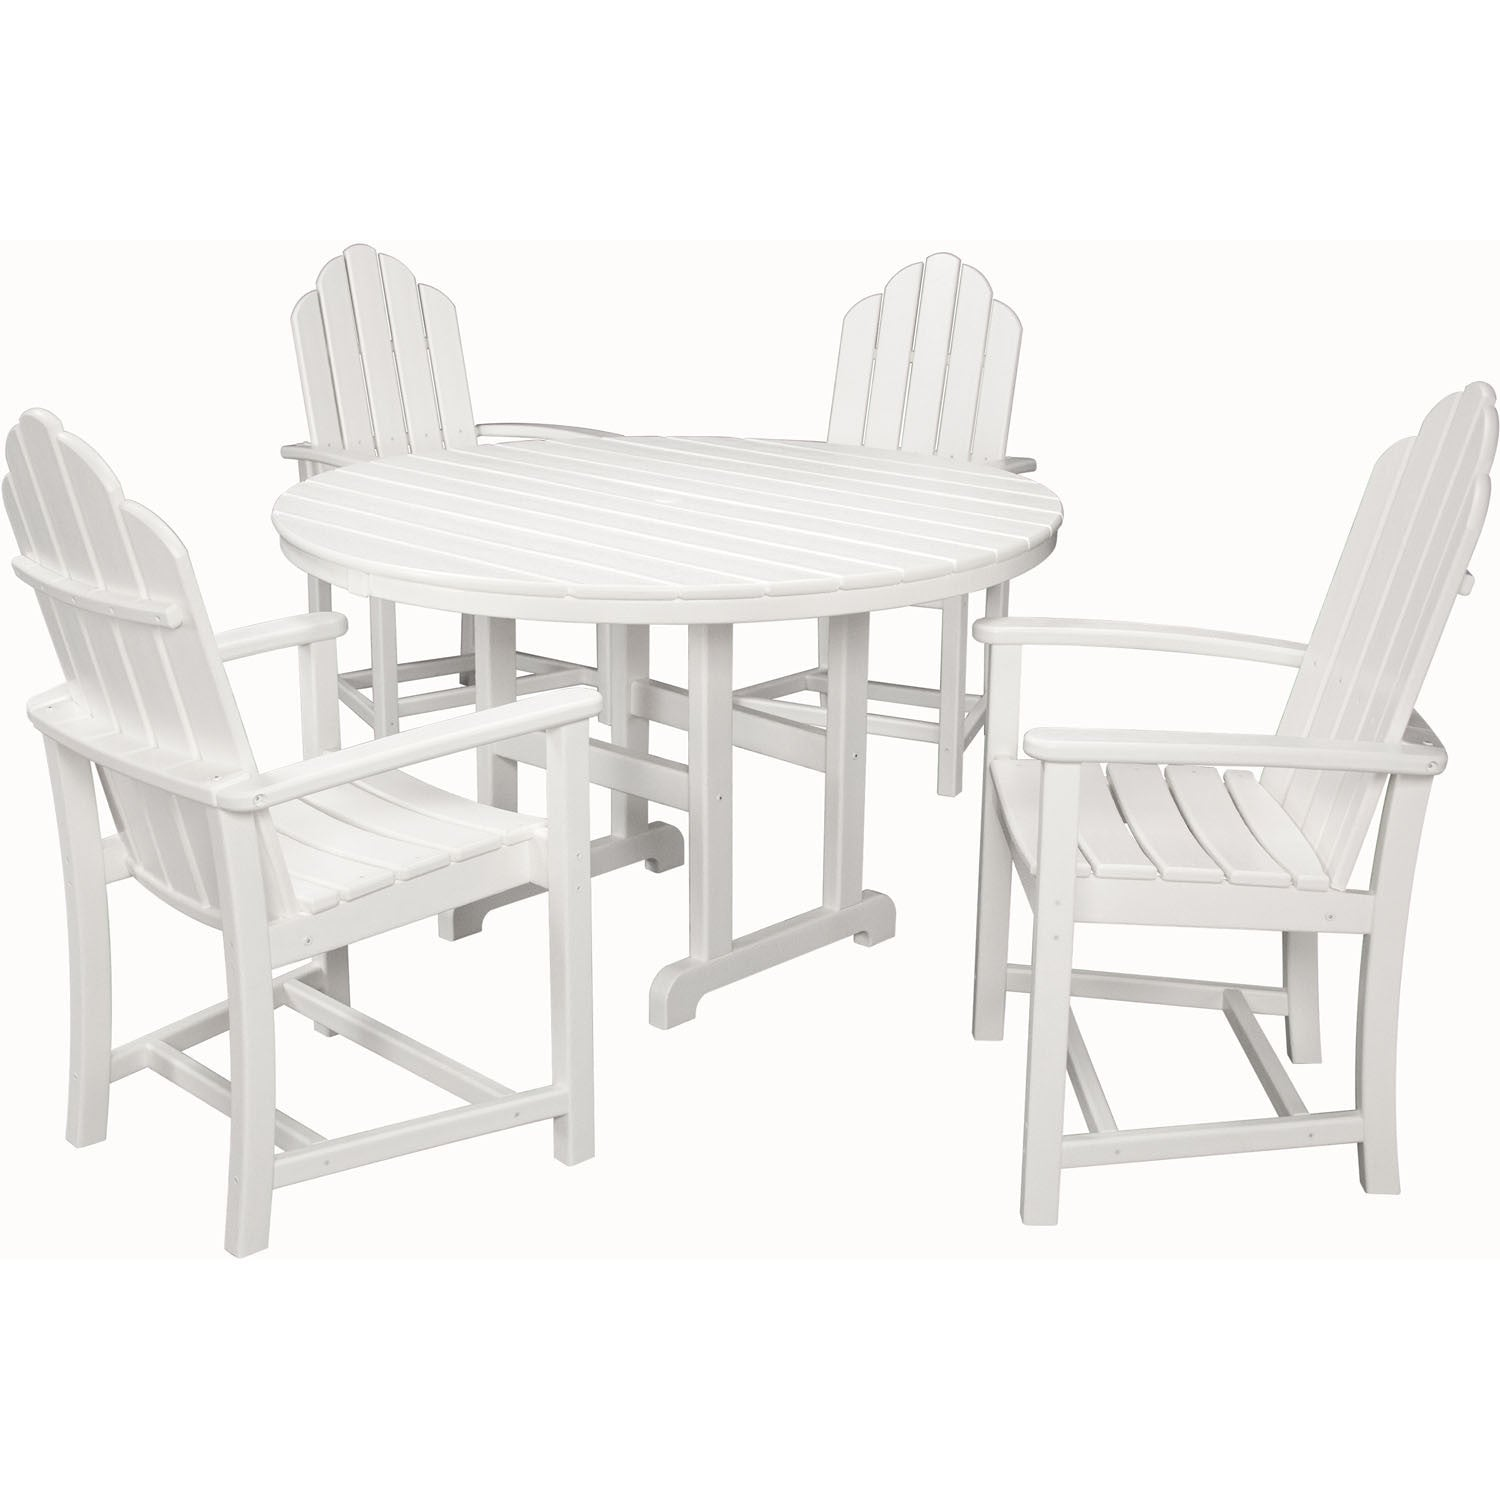 Hanover All-Weather Siesta Key 5pc Dining Set: 4 Adirondack Dining Chairs,  Table - SIESTAKEY5PC - White - Hanover All-Weather Siesta Key 5pc Dining Set: 4 Adirondack Dining